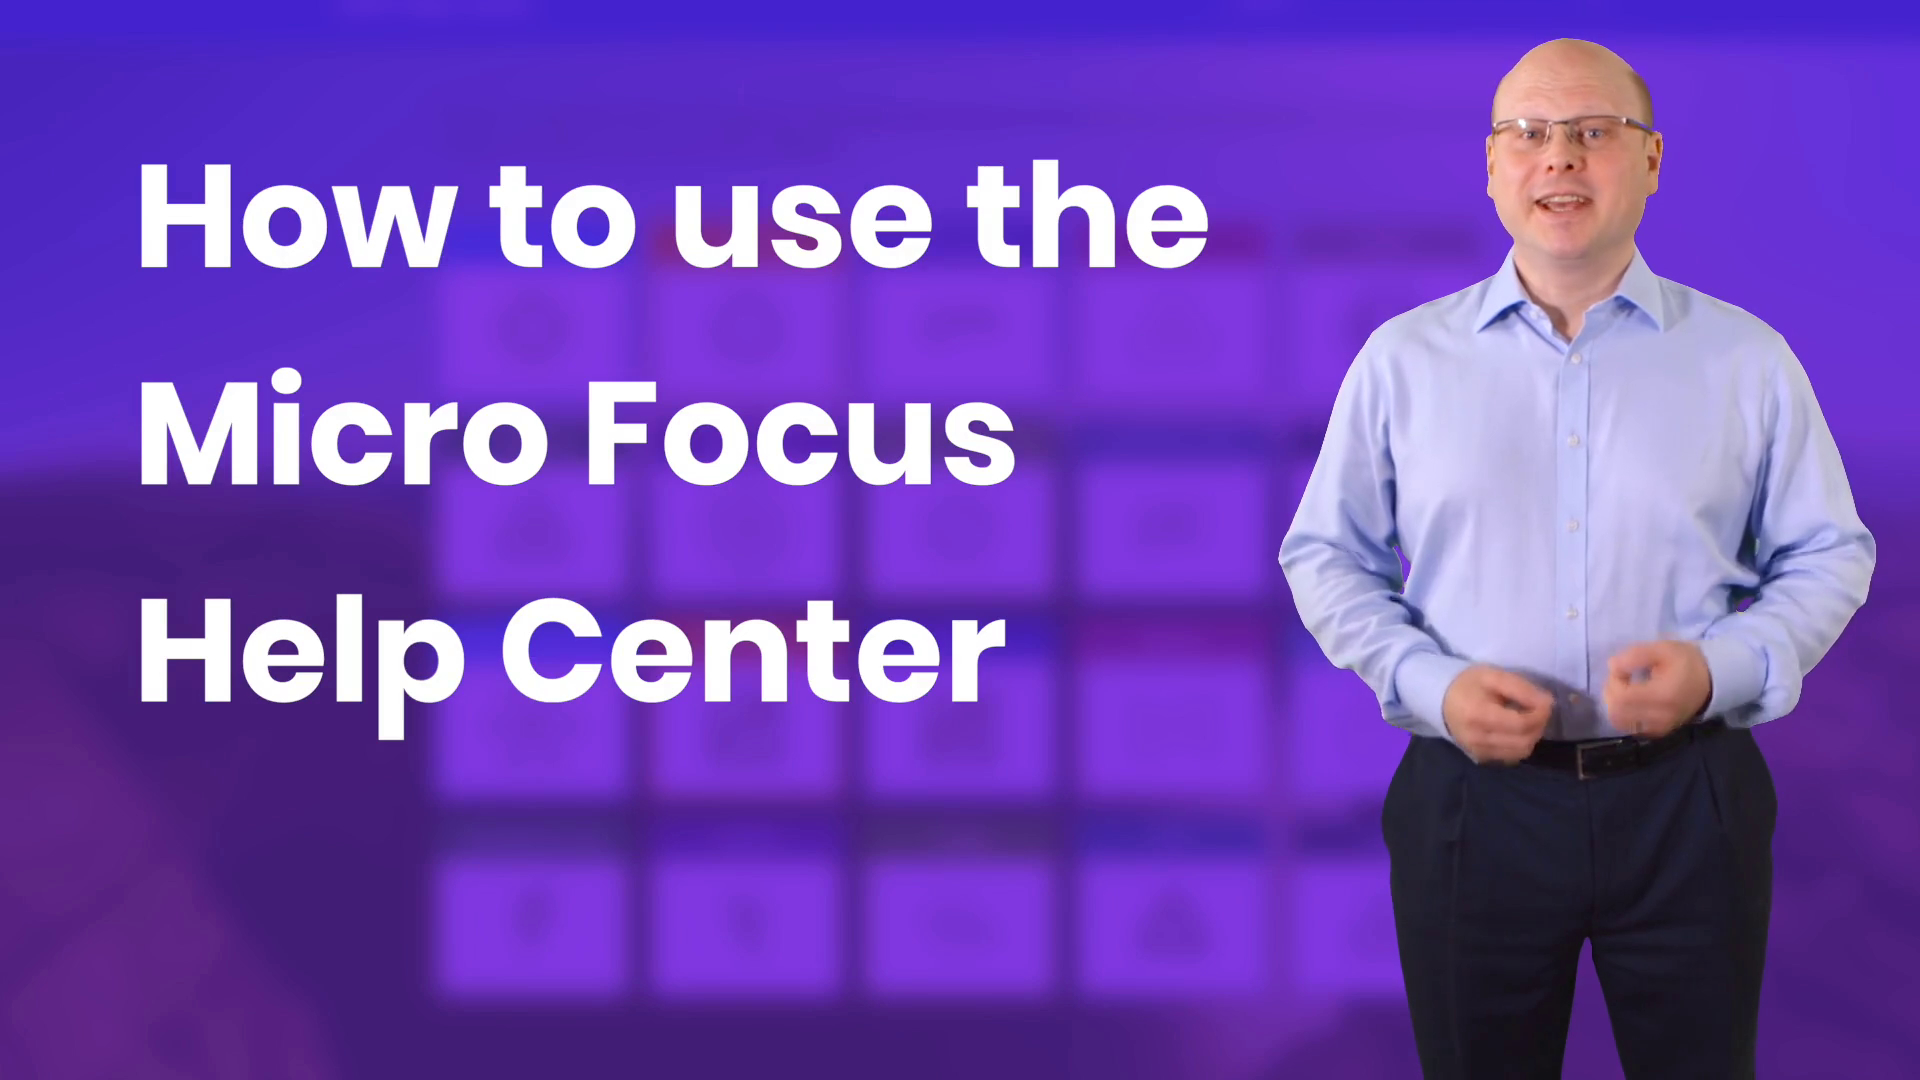 Micro Focus Help Center explained